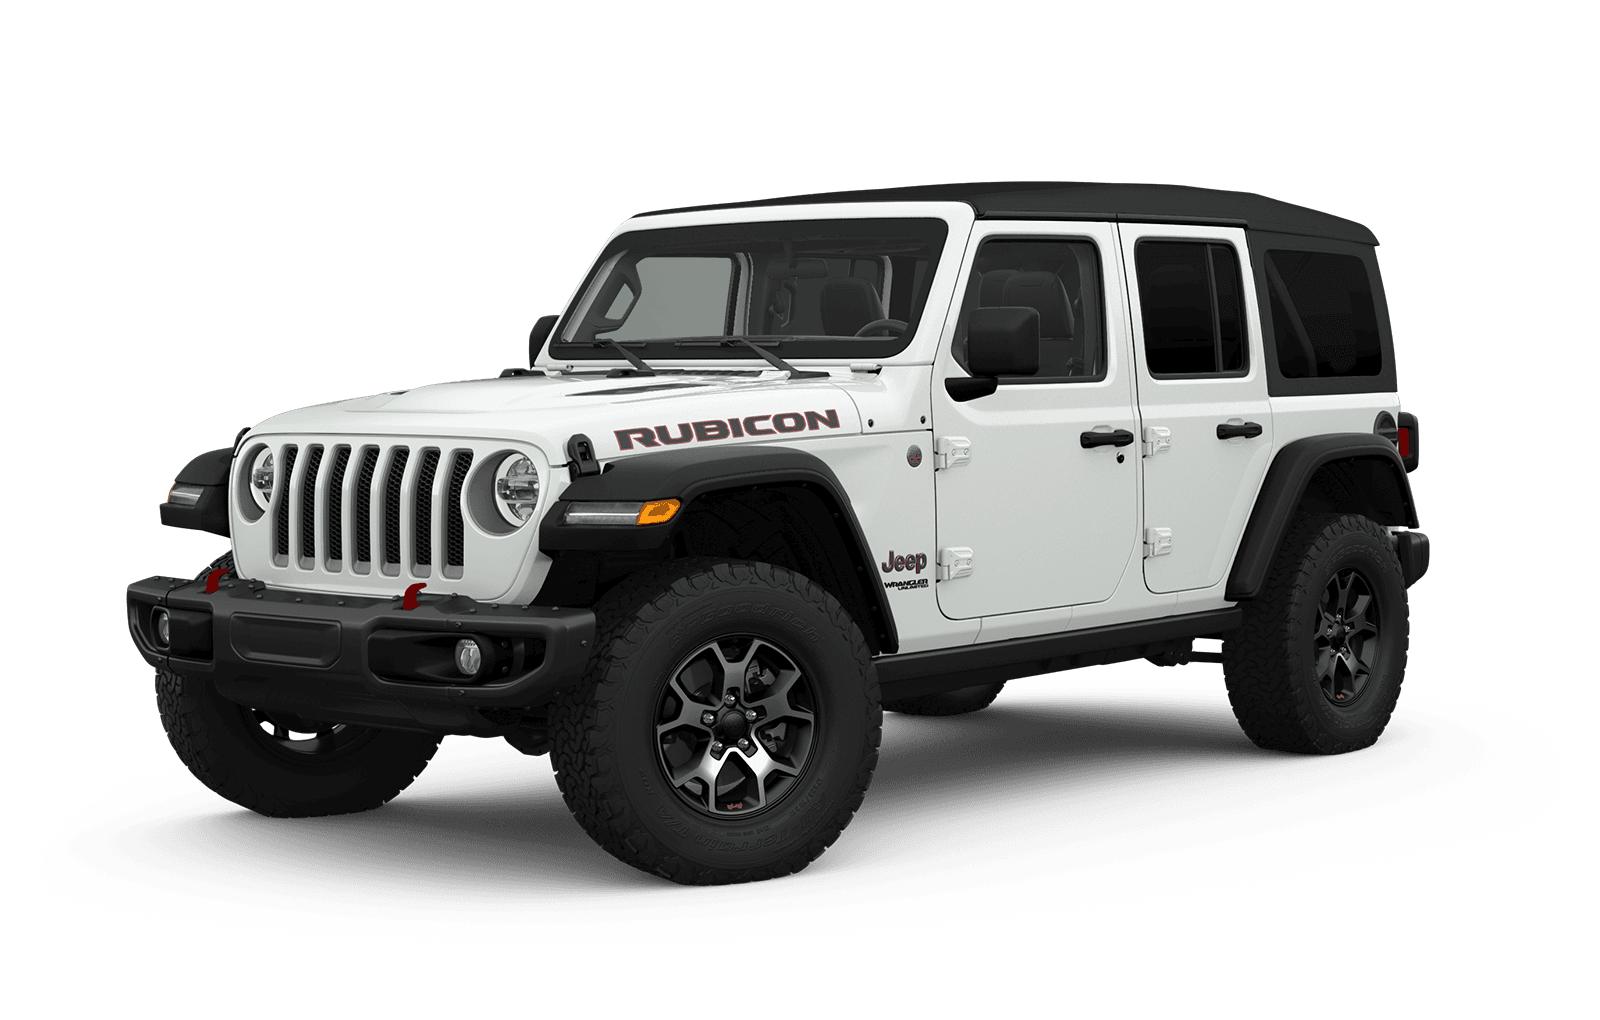 hight resolution of 2019 jeep wrangler full view in white with wheels